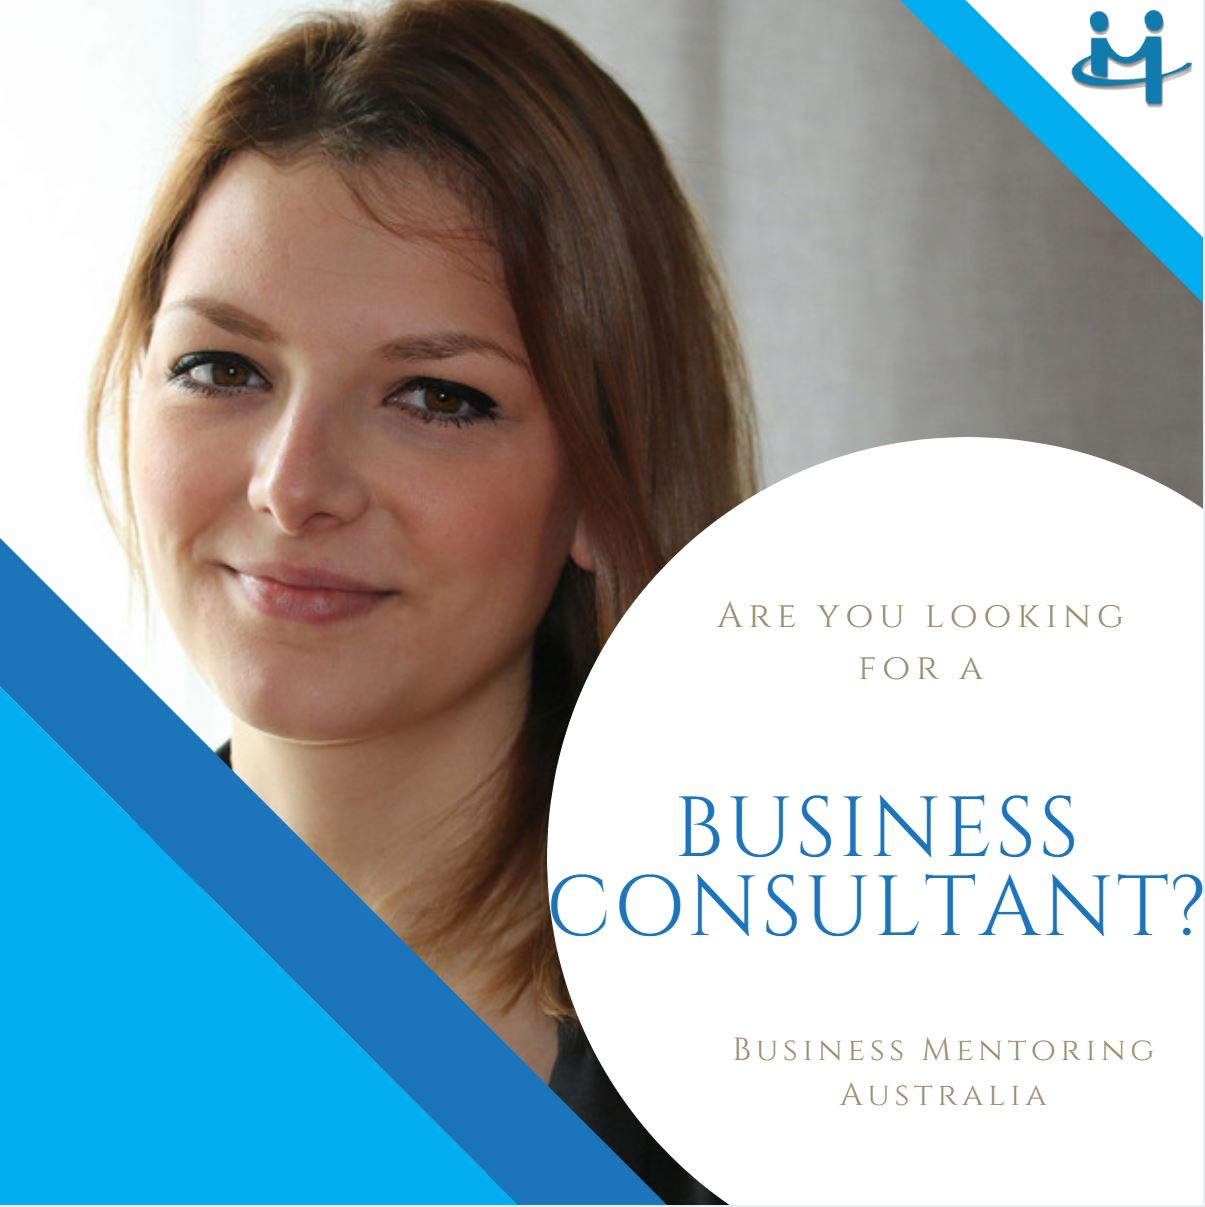 Are you looking for a Business Consultant?